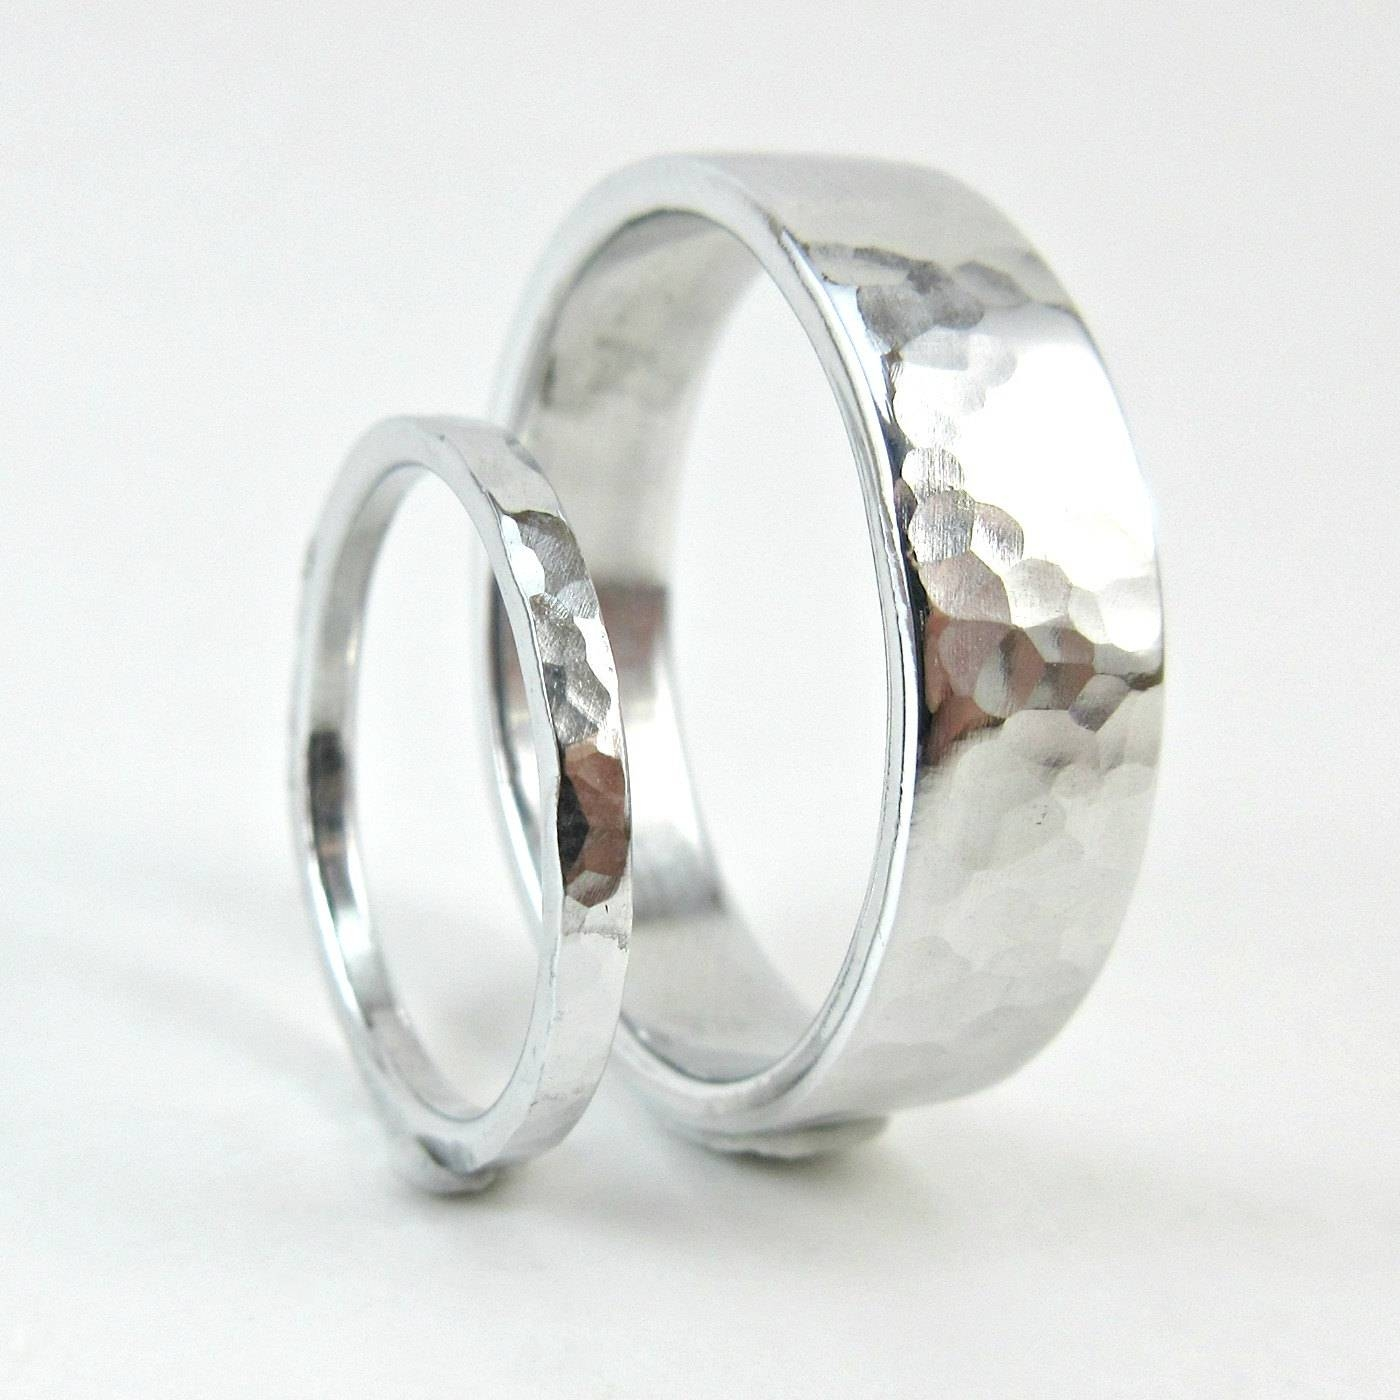 Hammered Aluminum Ring Set 10 Year Anniversary Bands His And Throughout Latest His And Hers Anniversary Rings (View 4 of 25)